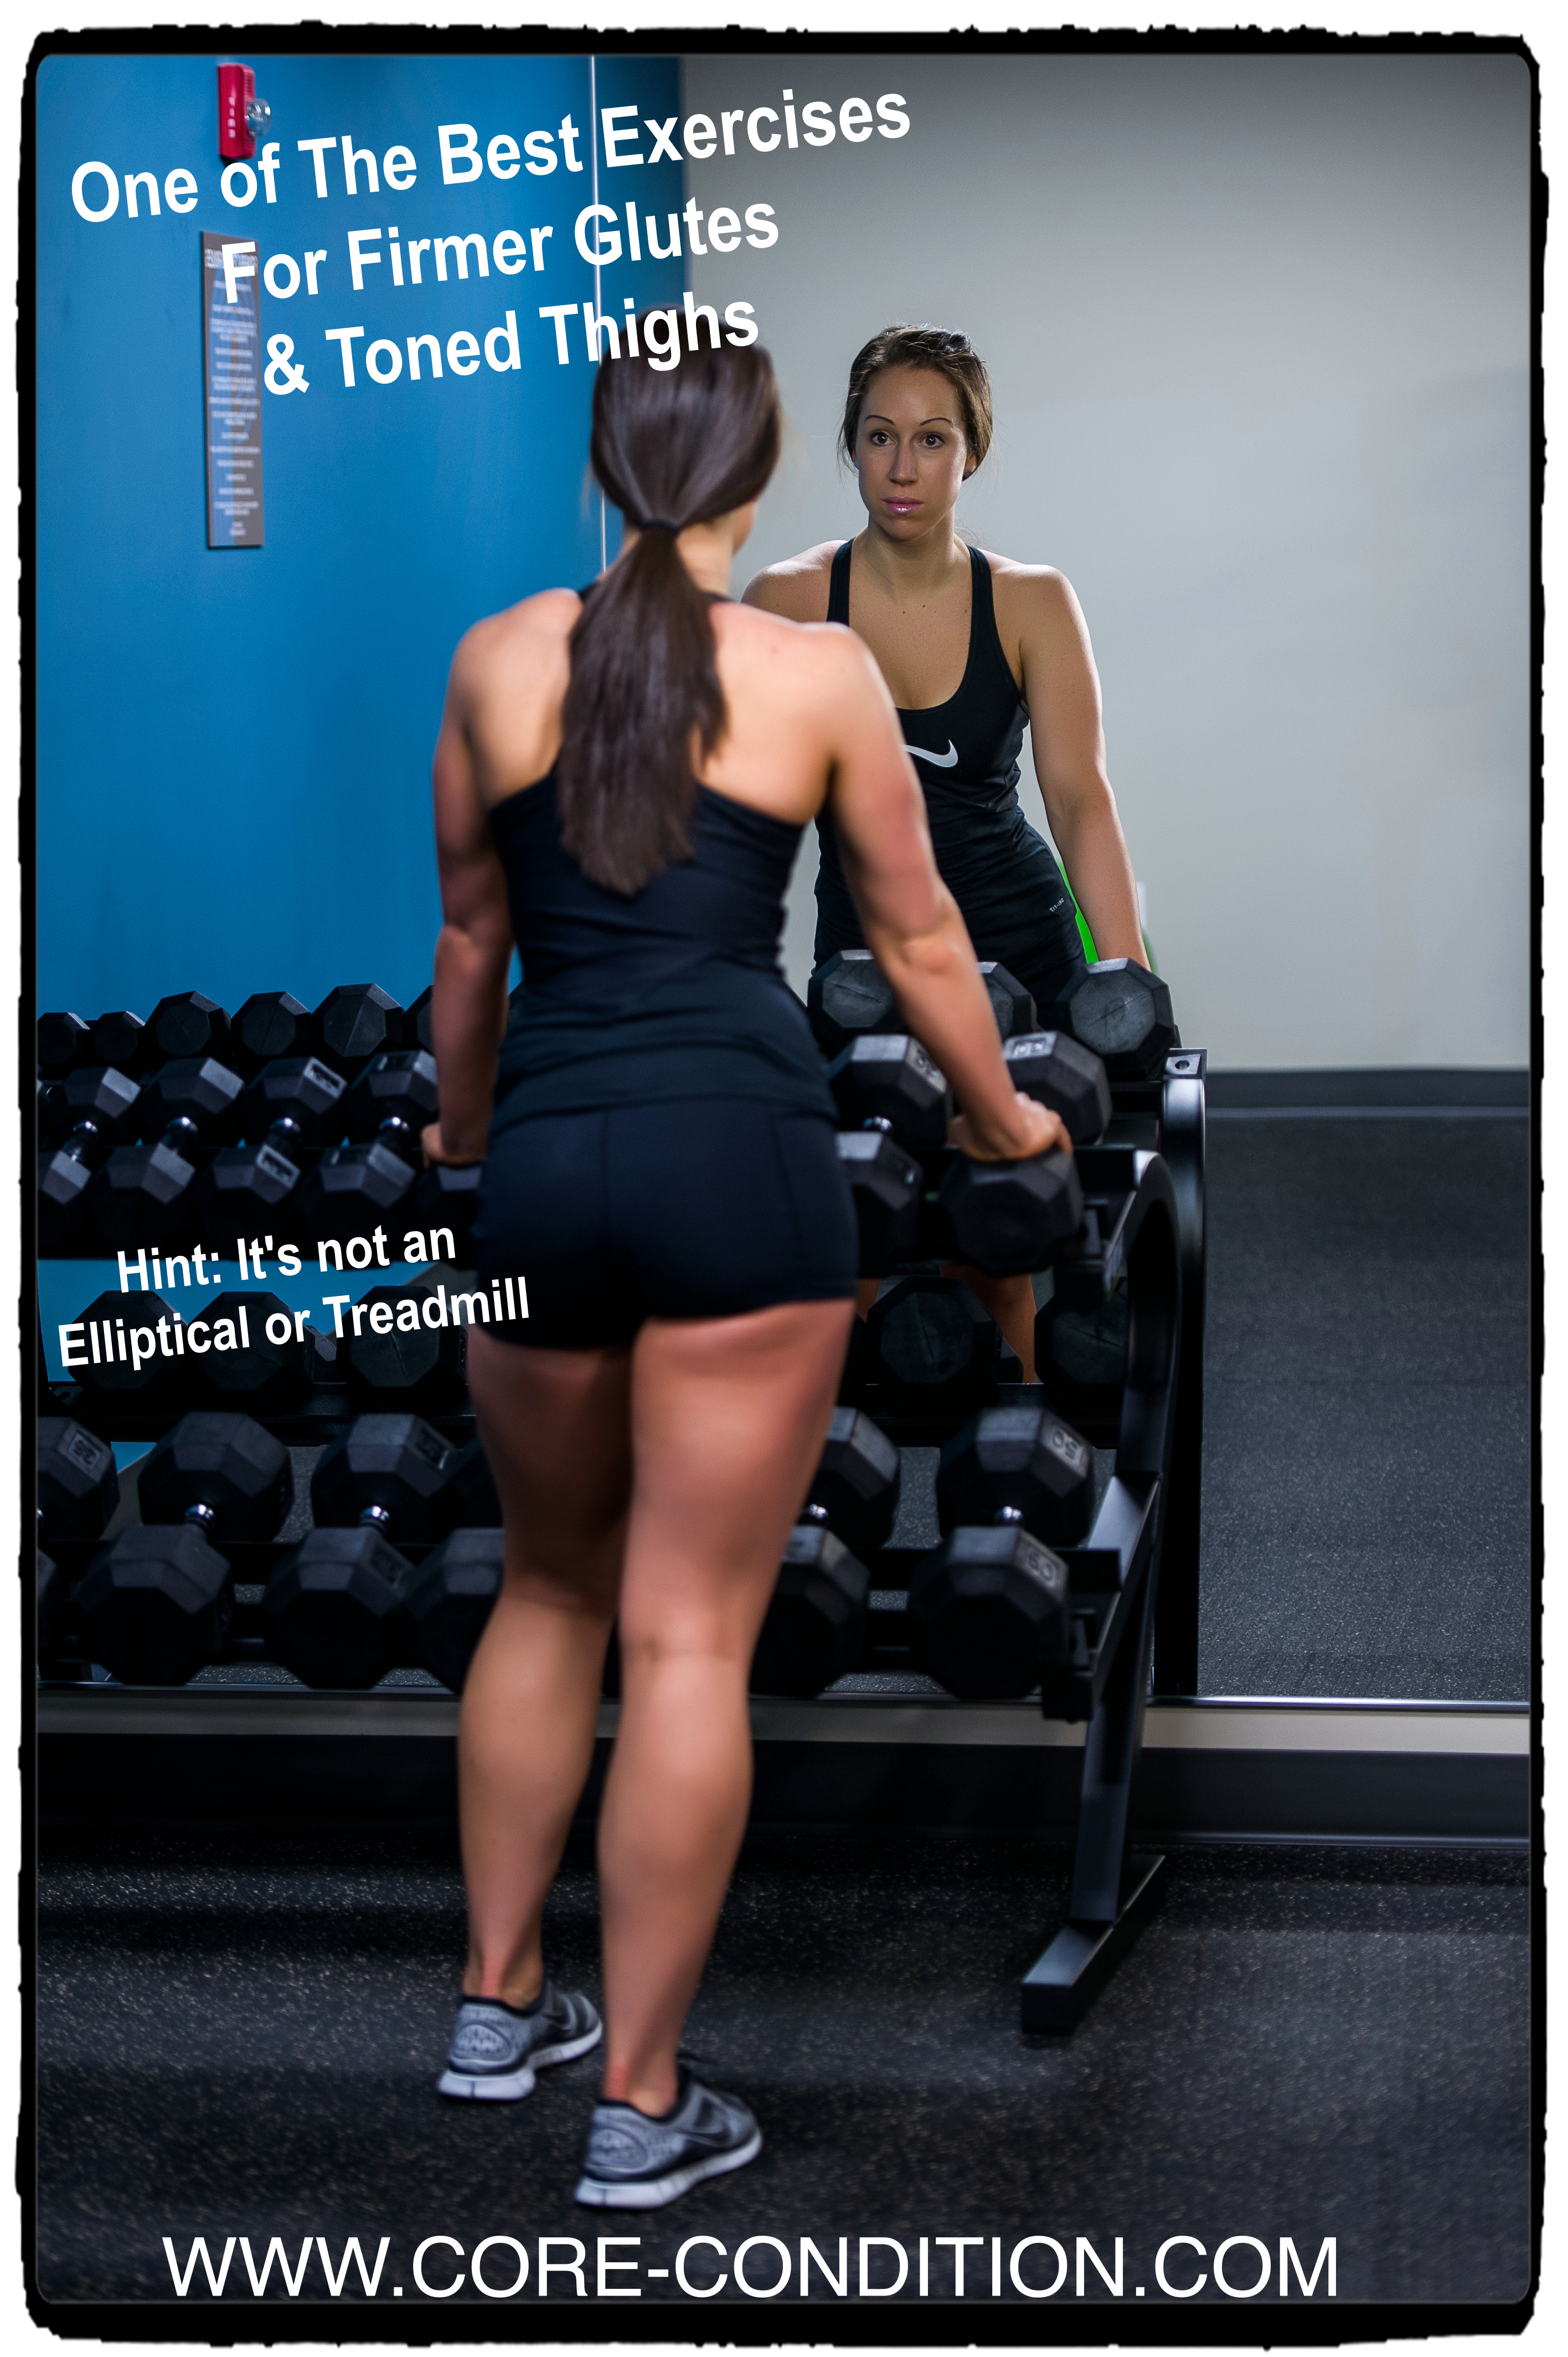 One of the Best Exercises for Firmer Glutes & Toned Thighs: The Single-Leg Romanian Deadlift